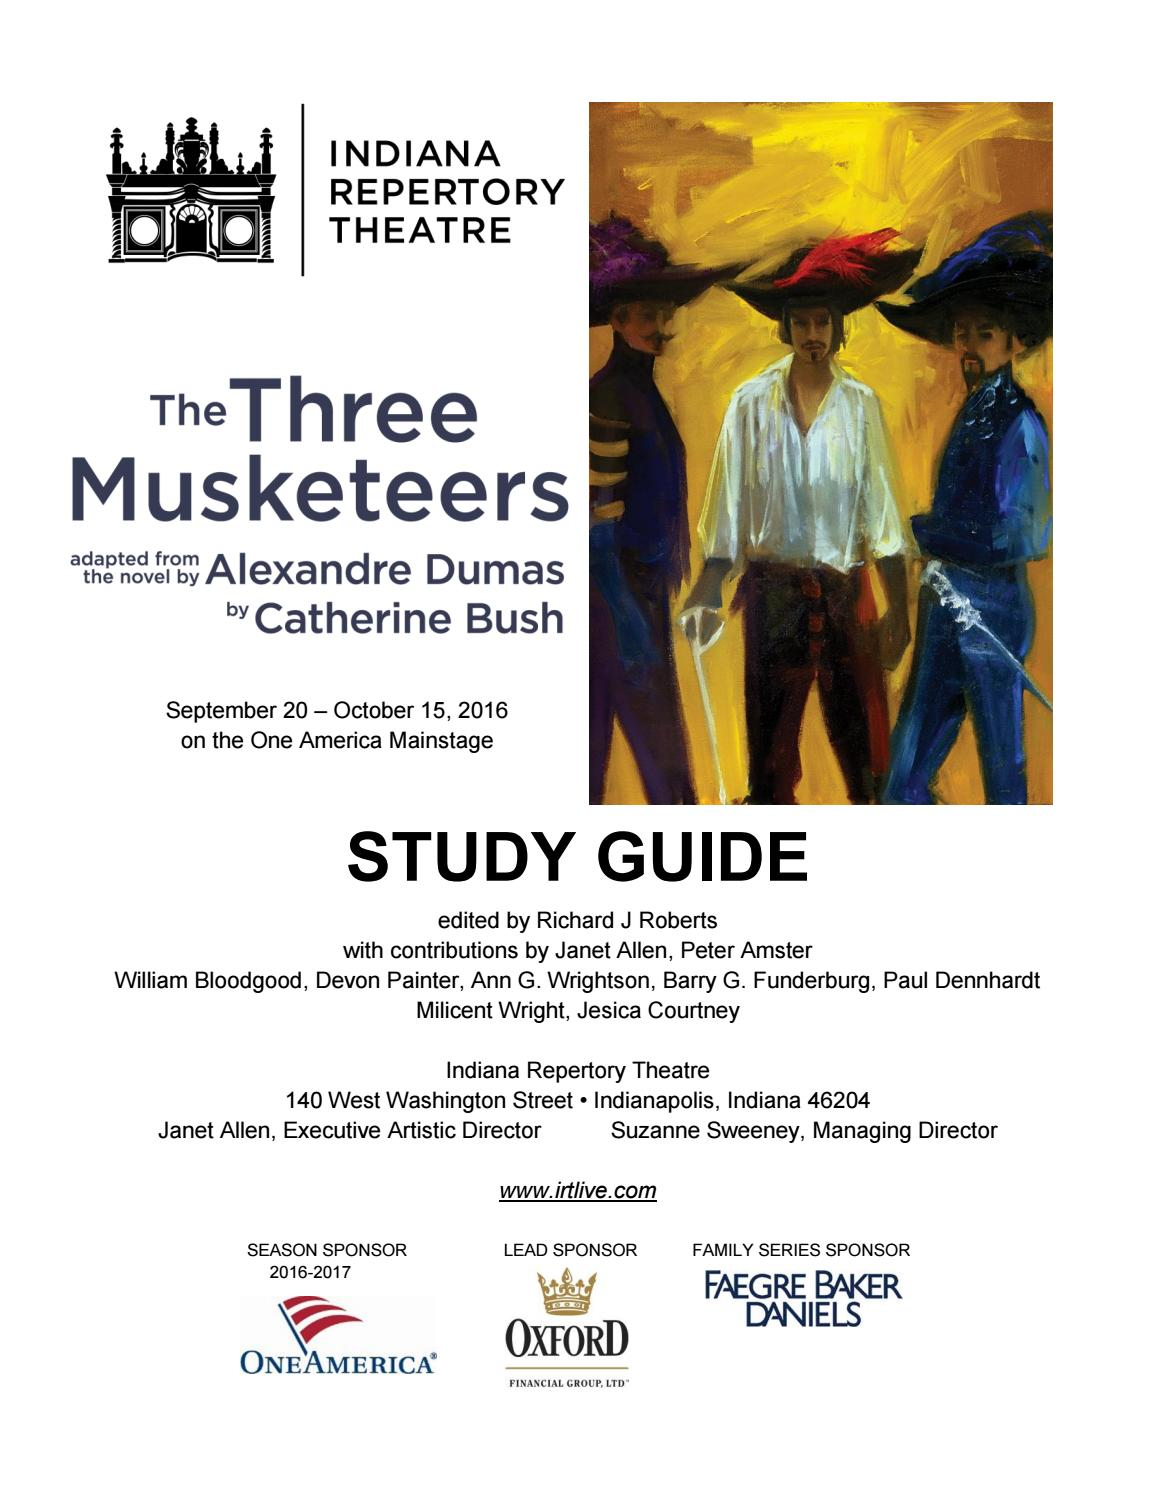 IRT Study Guide for The Three Musketeers by Indiana Repertory Theatre -  issuu